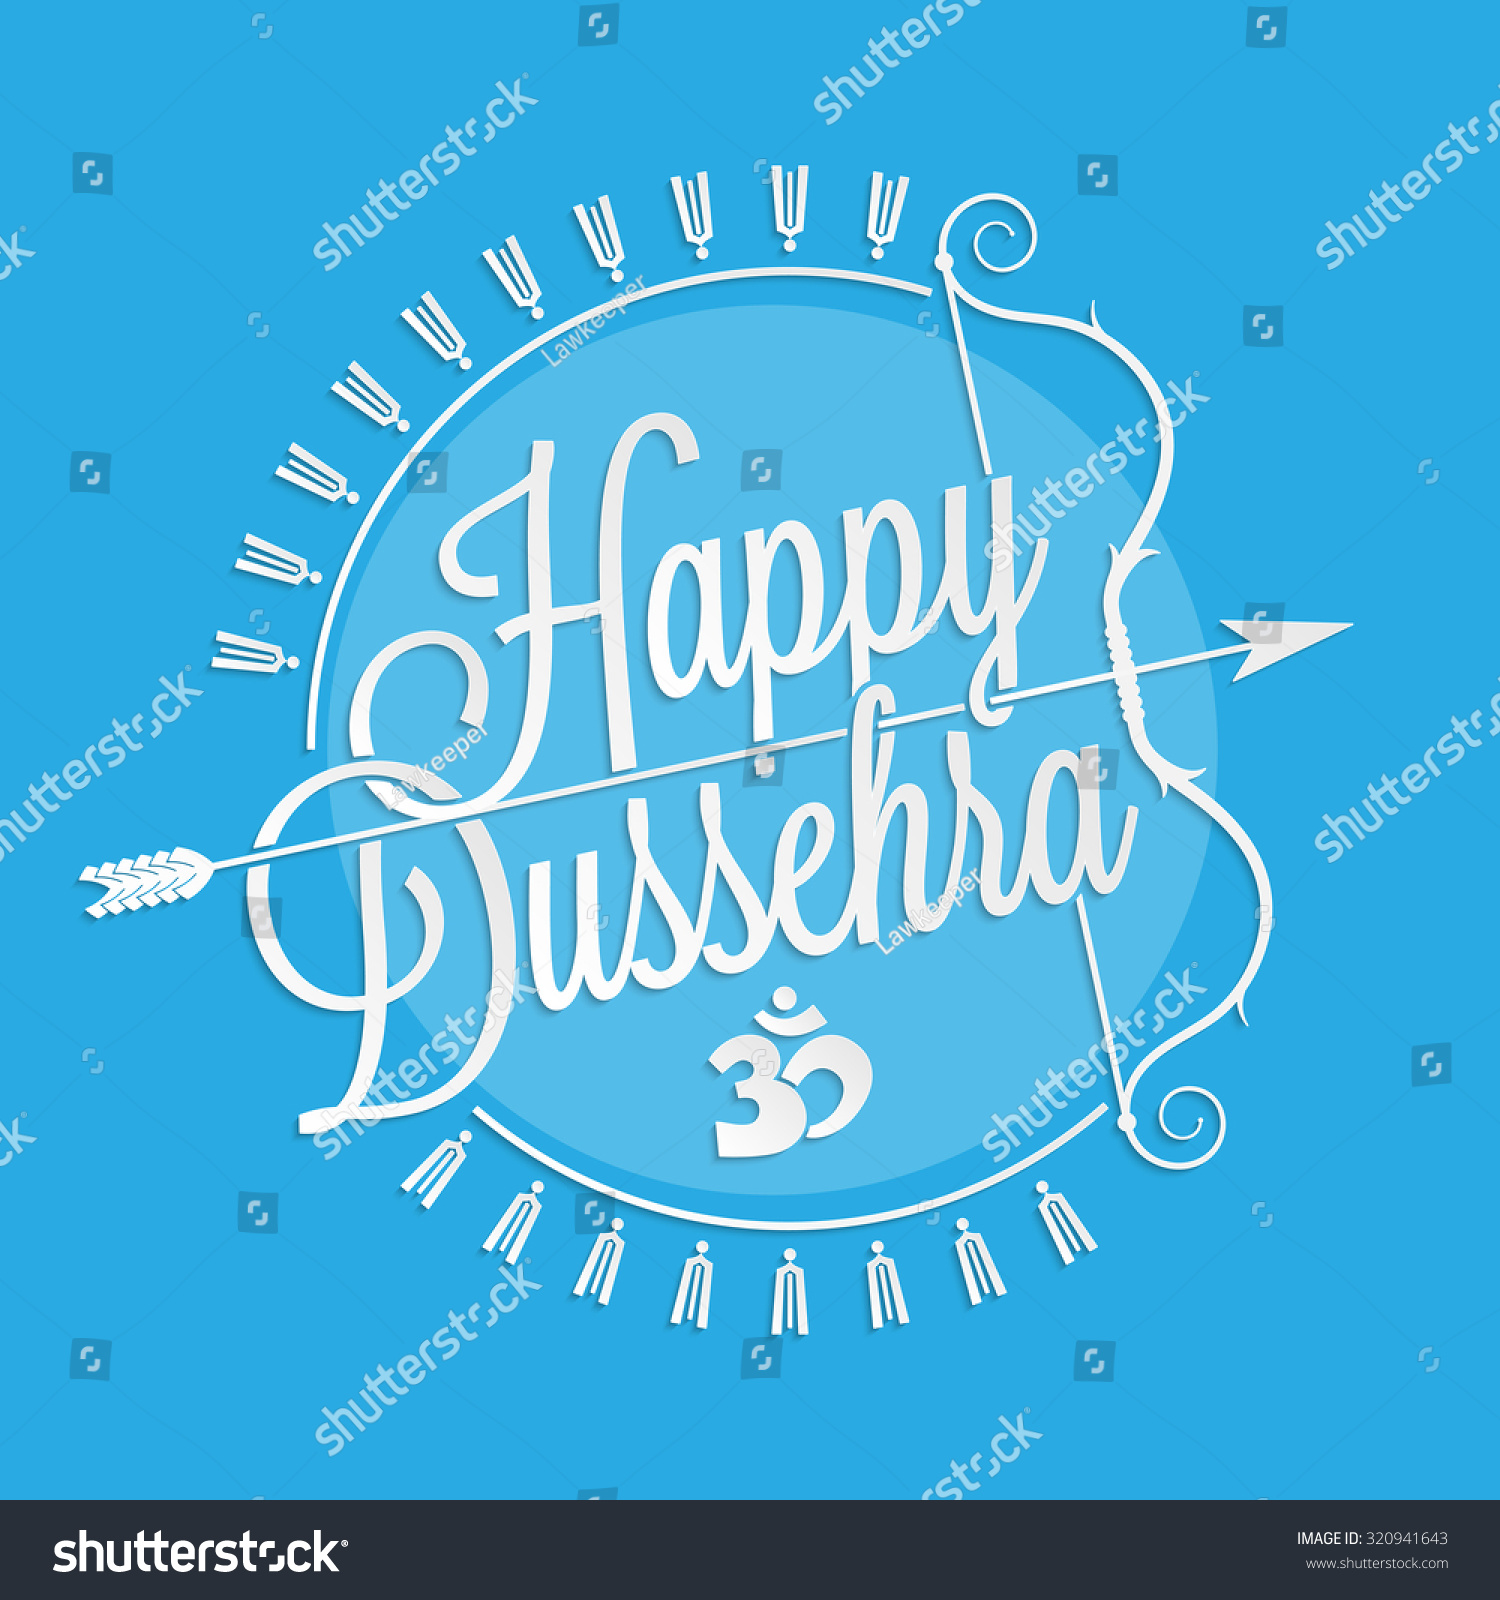 Happy dussehra lettering your greeting card stock vector 2018 happy dussehra lettering for your greeting card design m4hsunfo